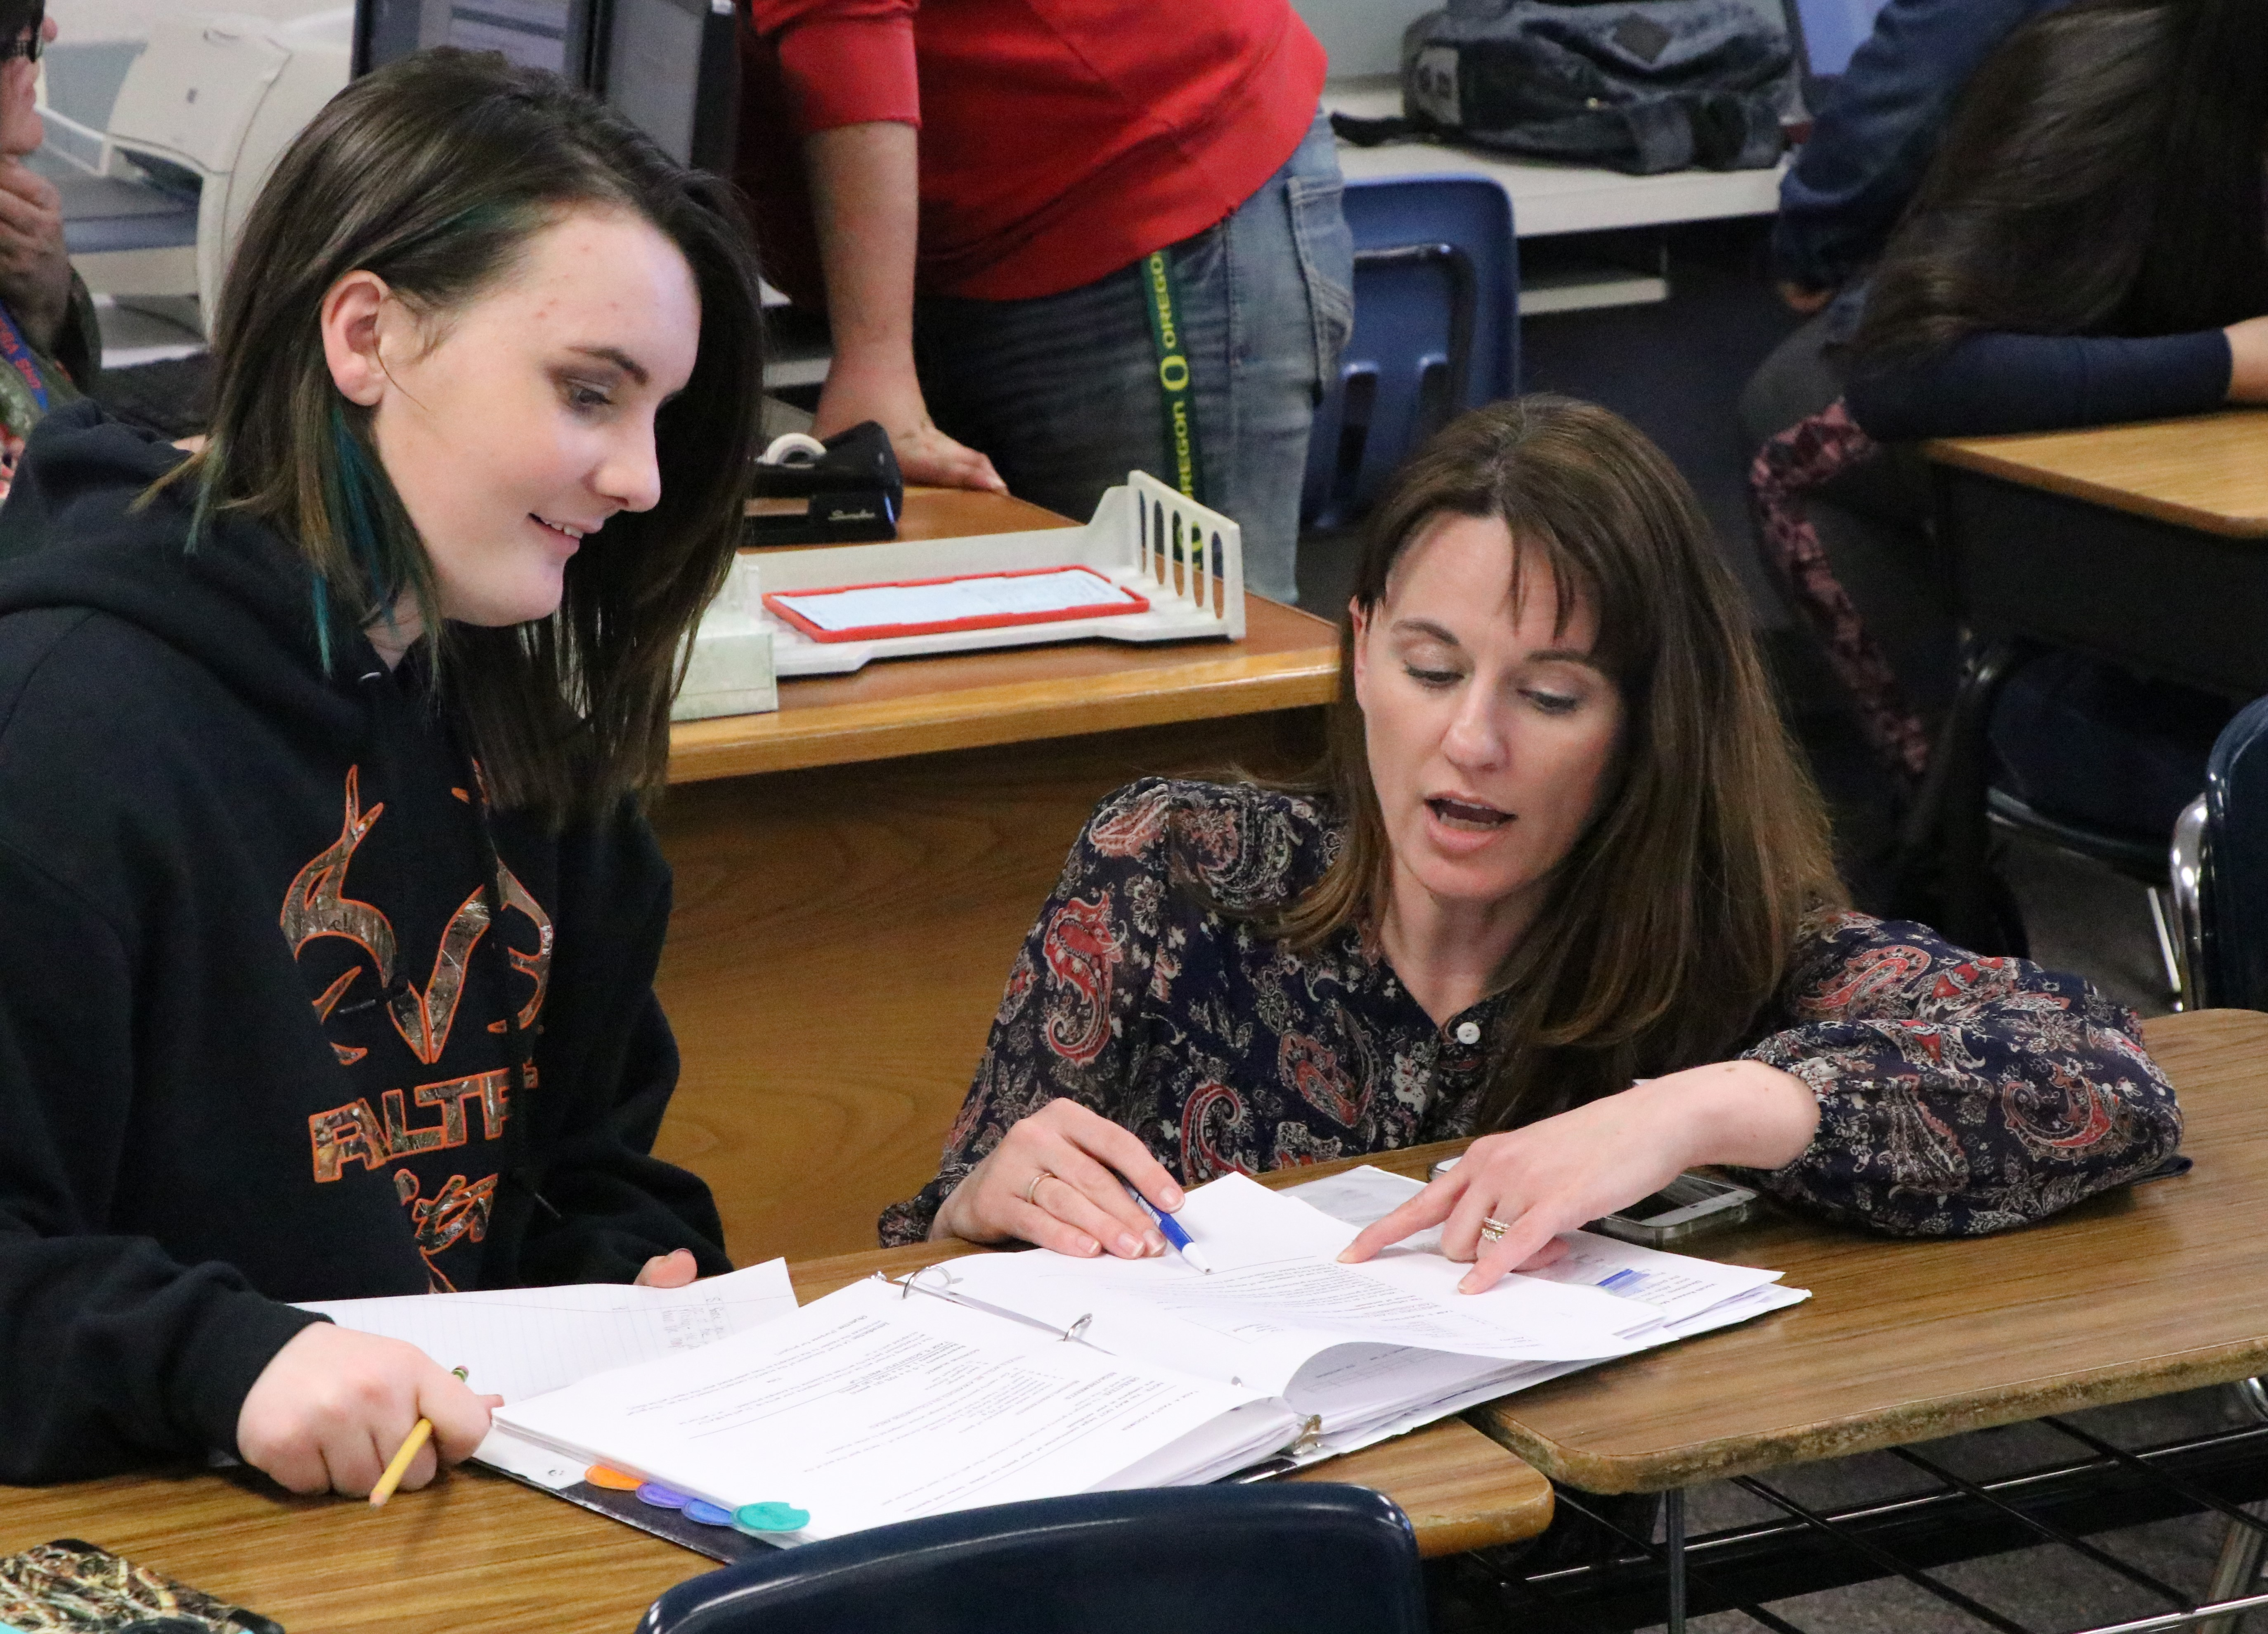 A student asks Umatilla Superintendent Heidi Sipe for help.